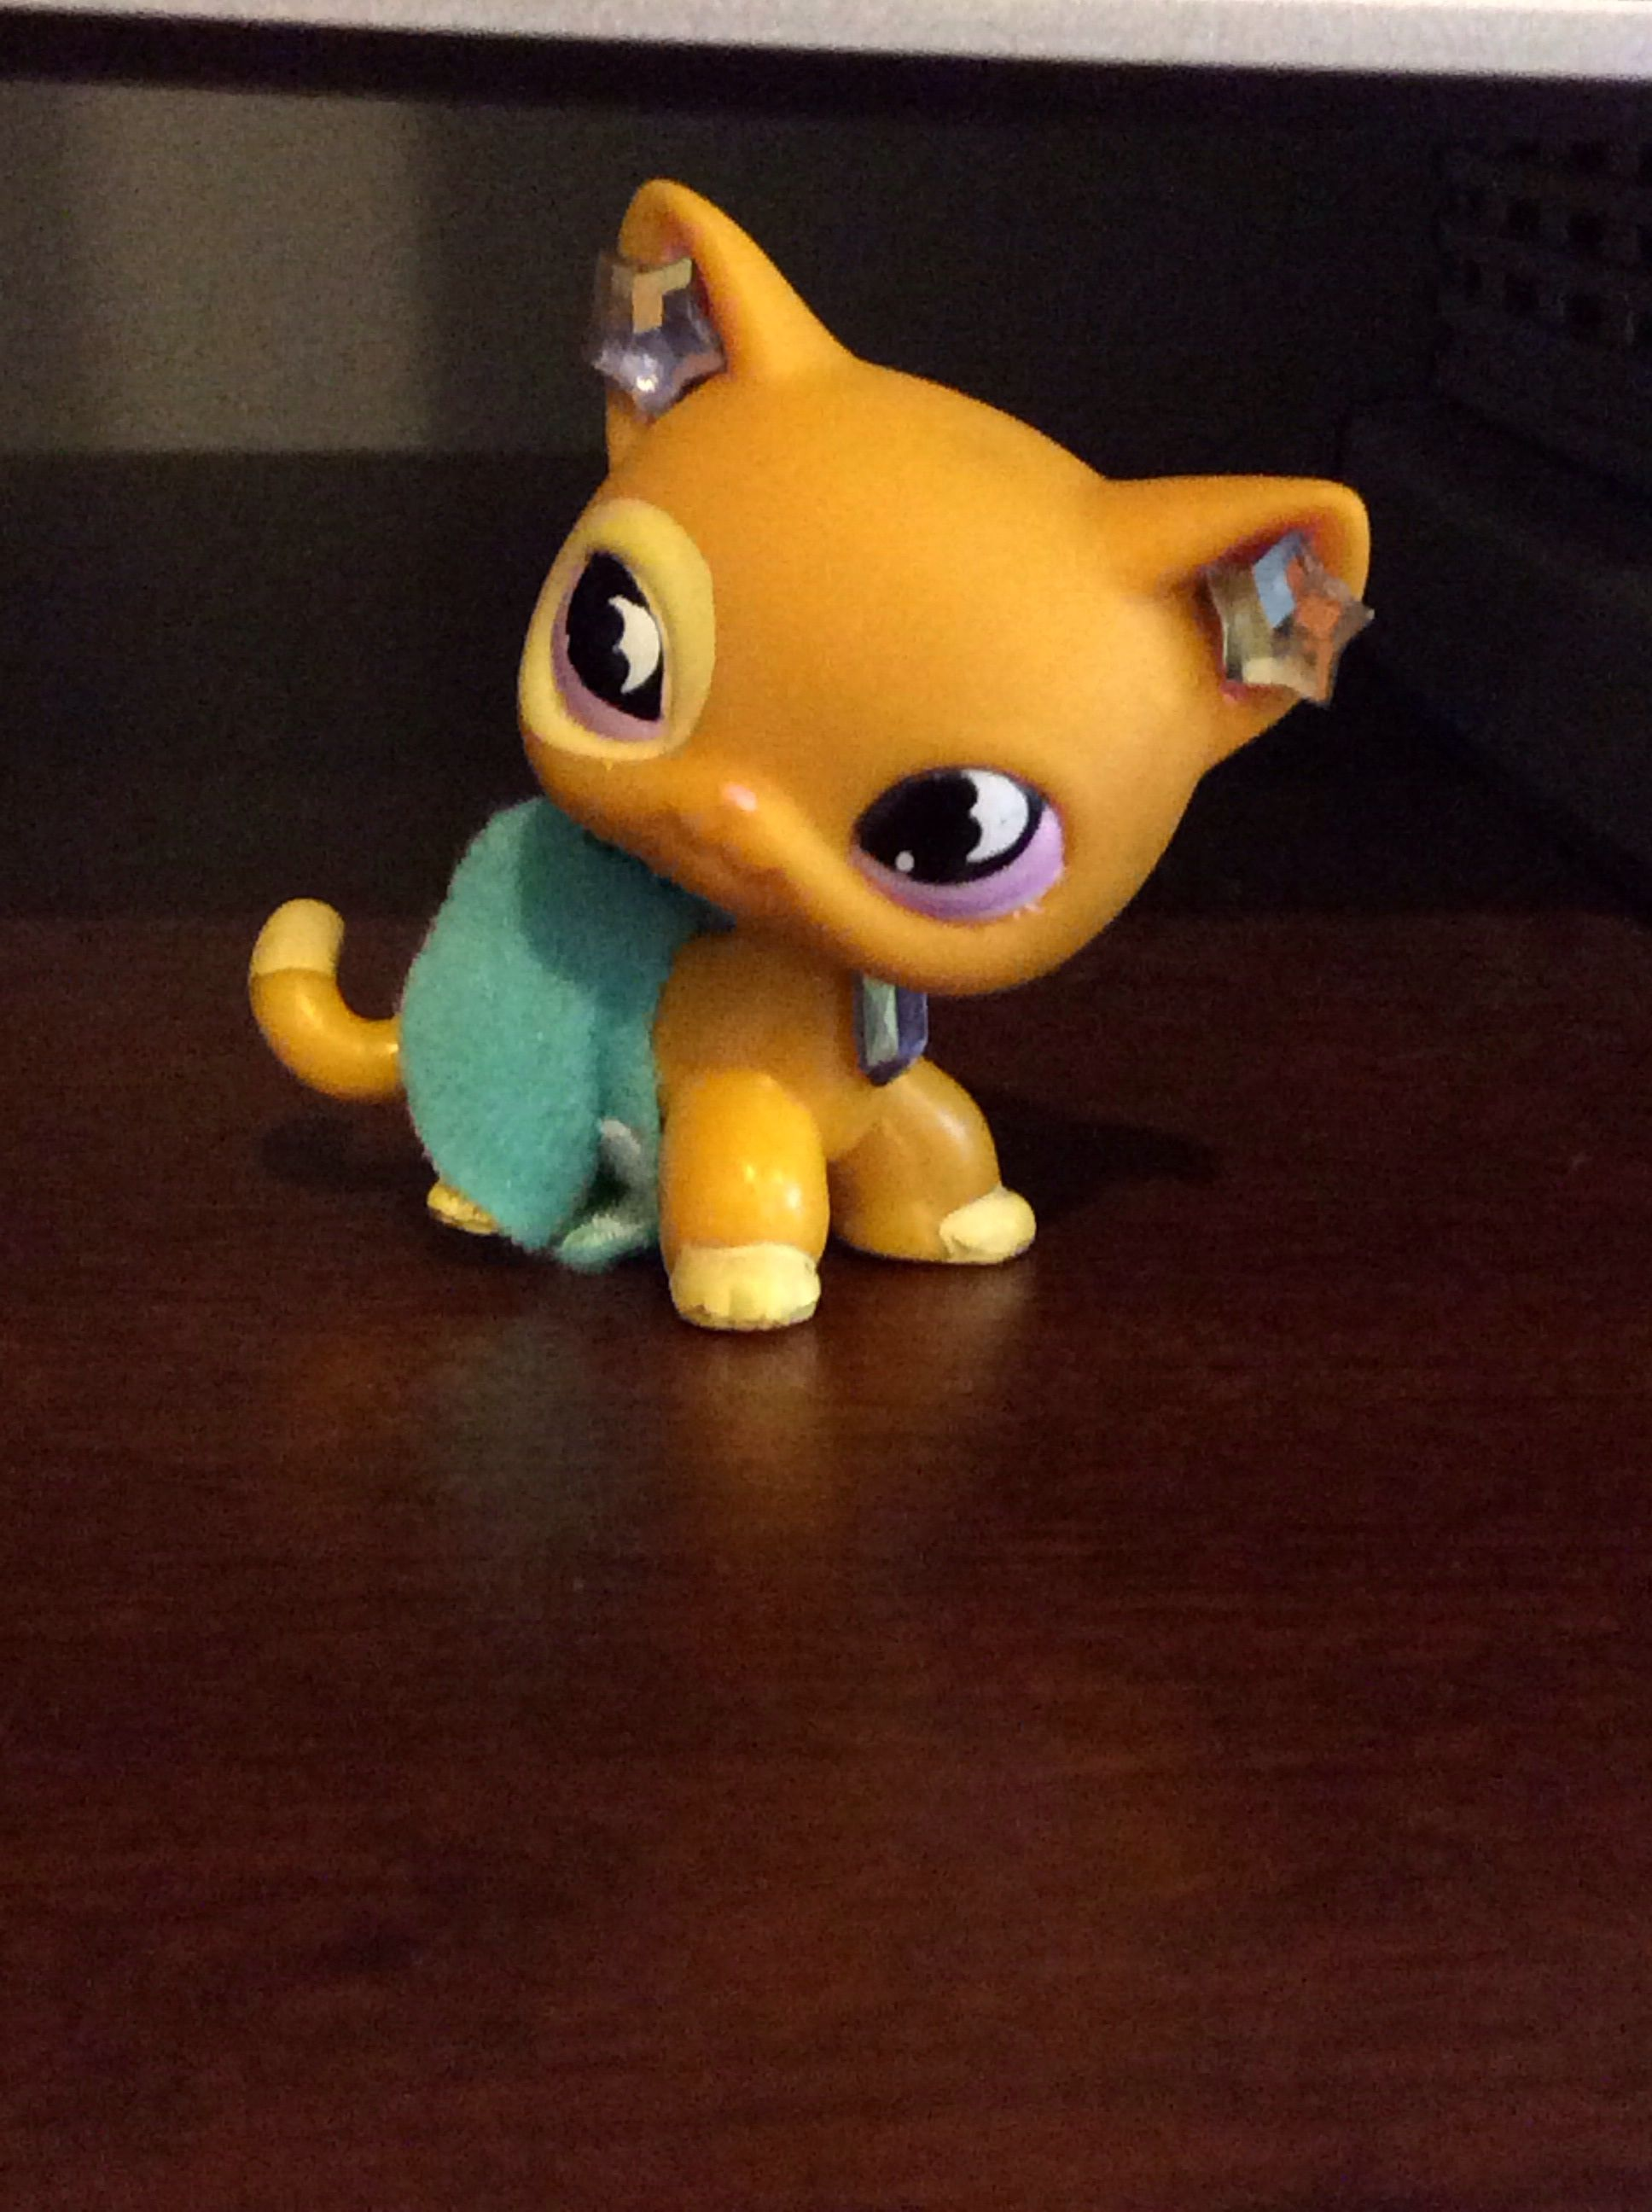 Lps I love her eyes:))